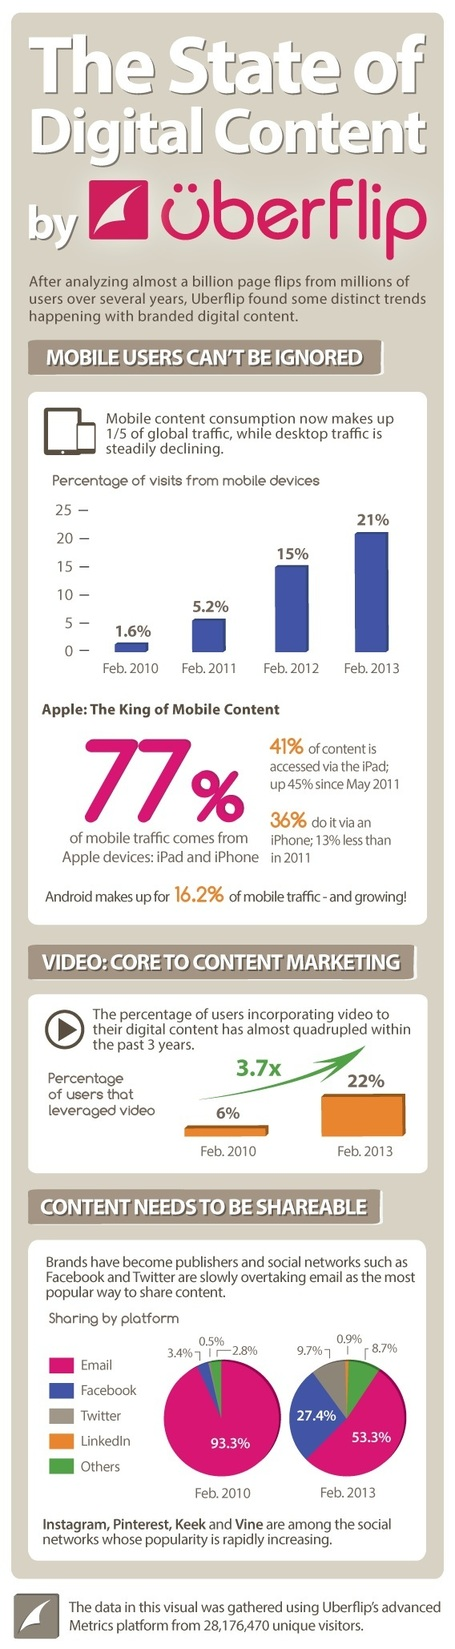 The State of Digital Content [Infographic] - Profs | The Marketing Automation Alert | Scoop.it